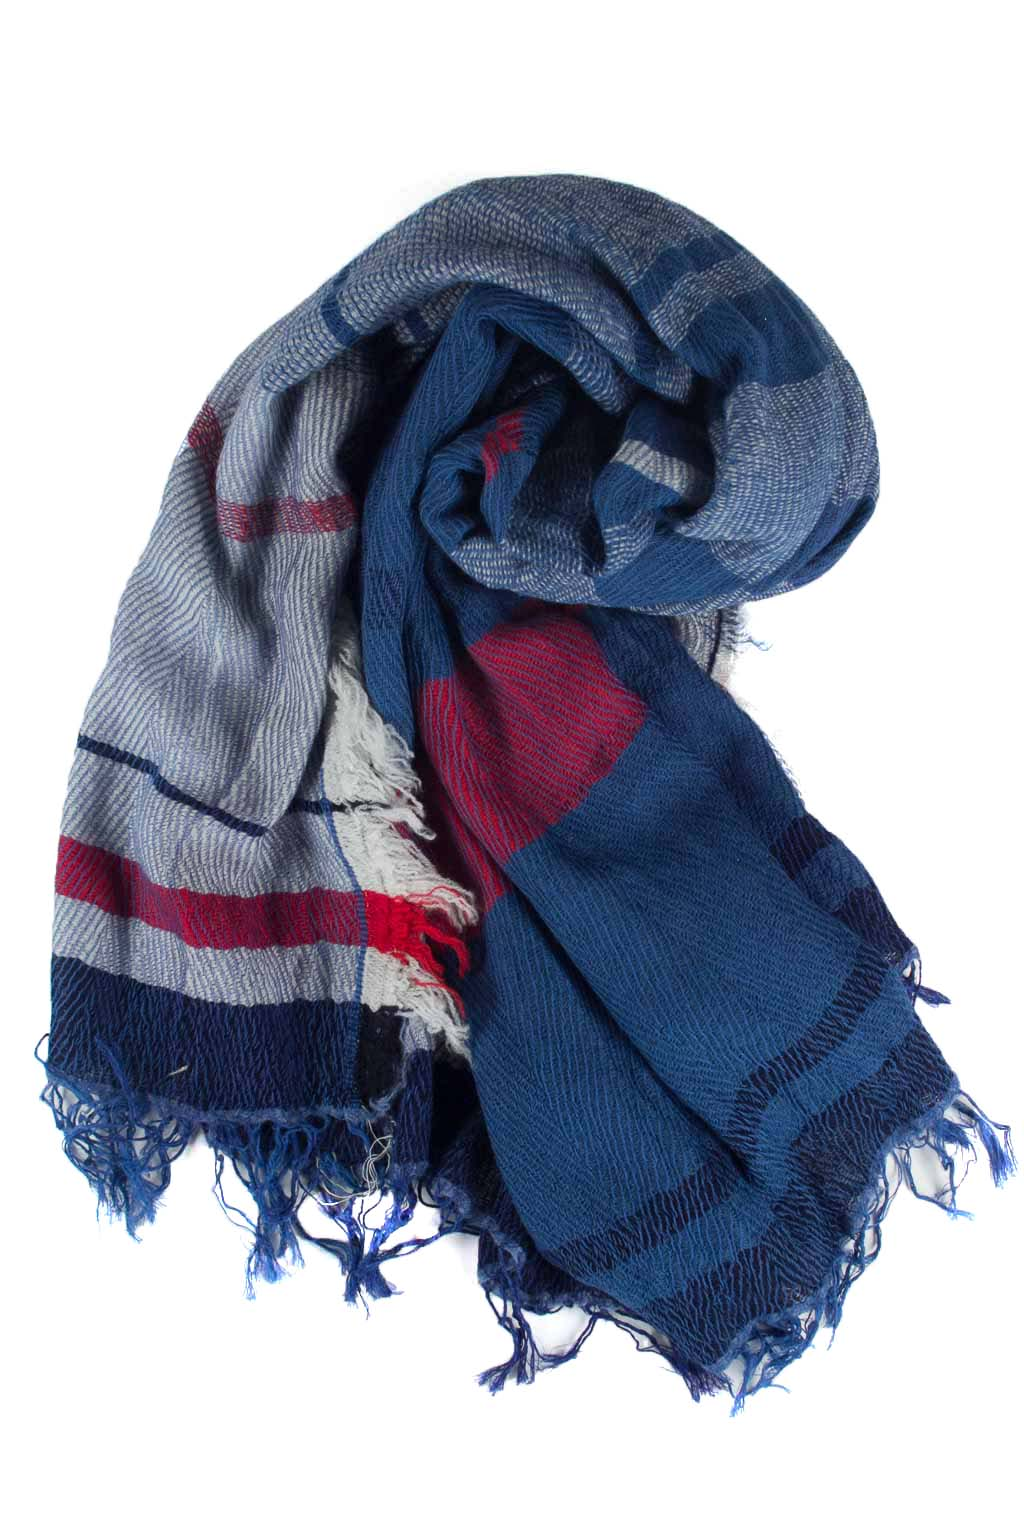 Wool x Cotton Scarf - Large